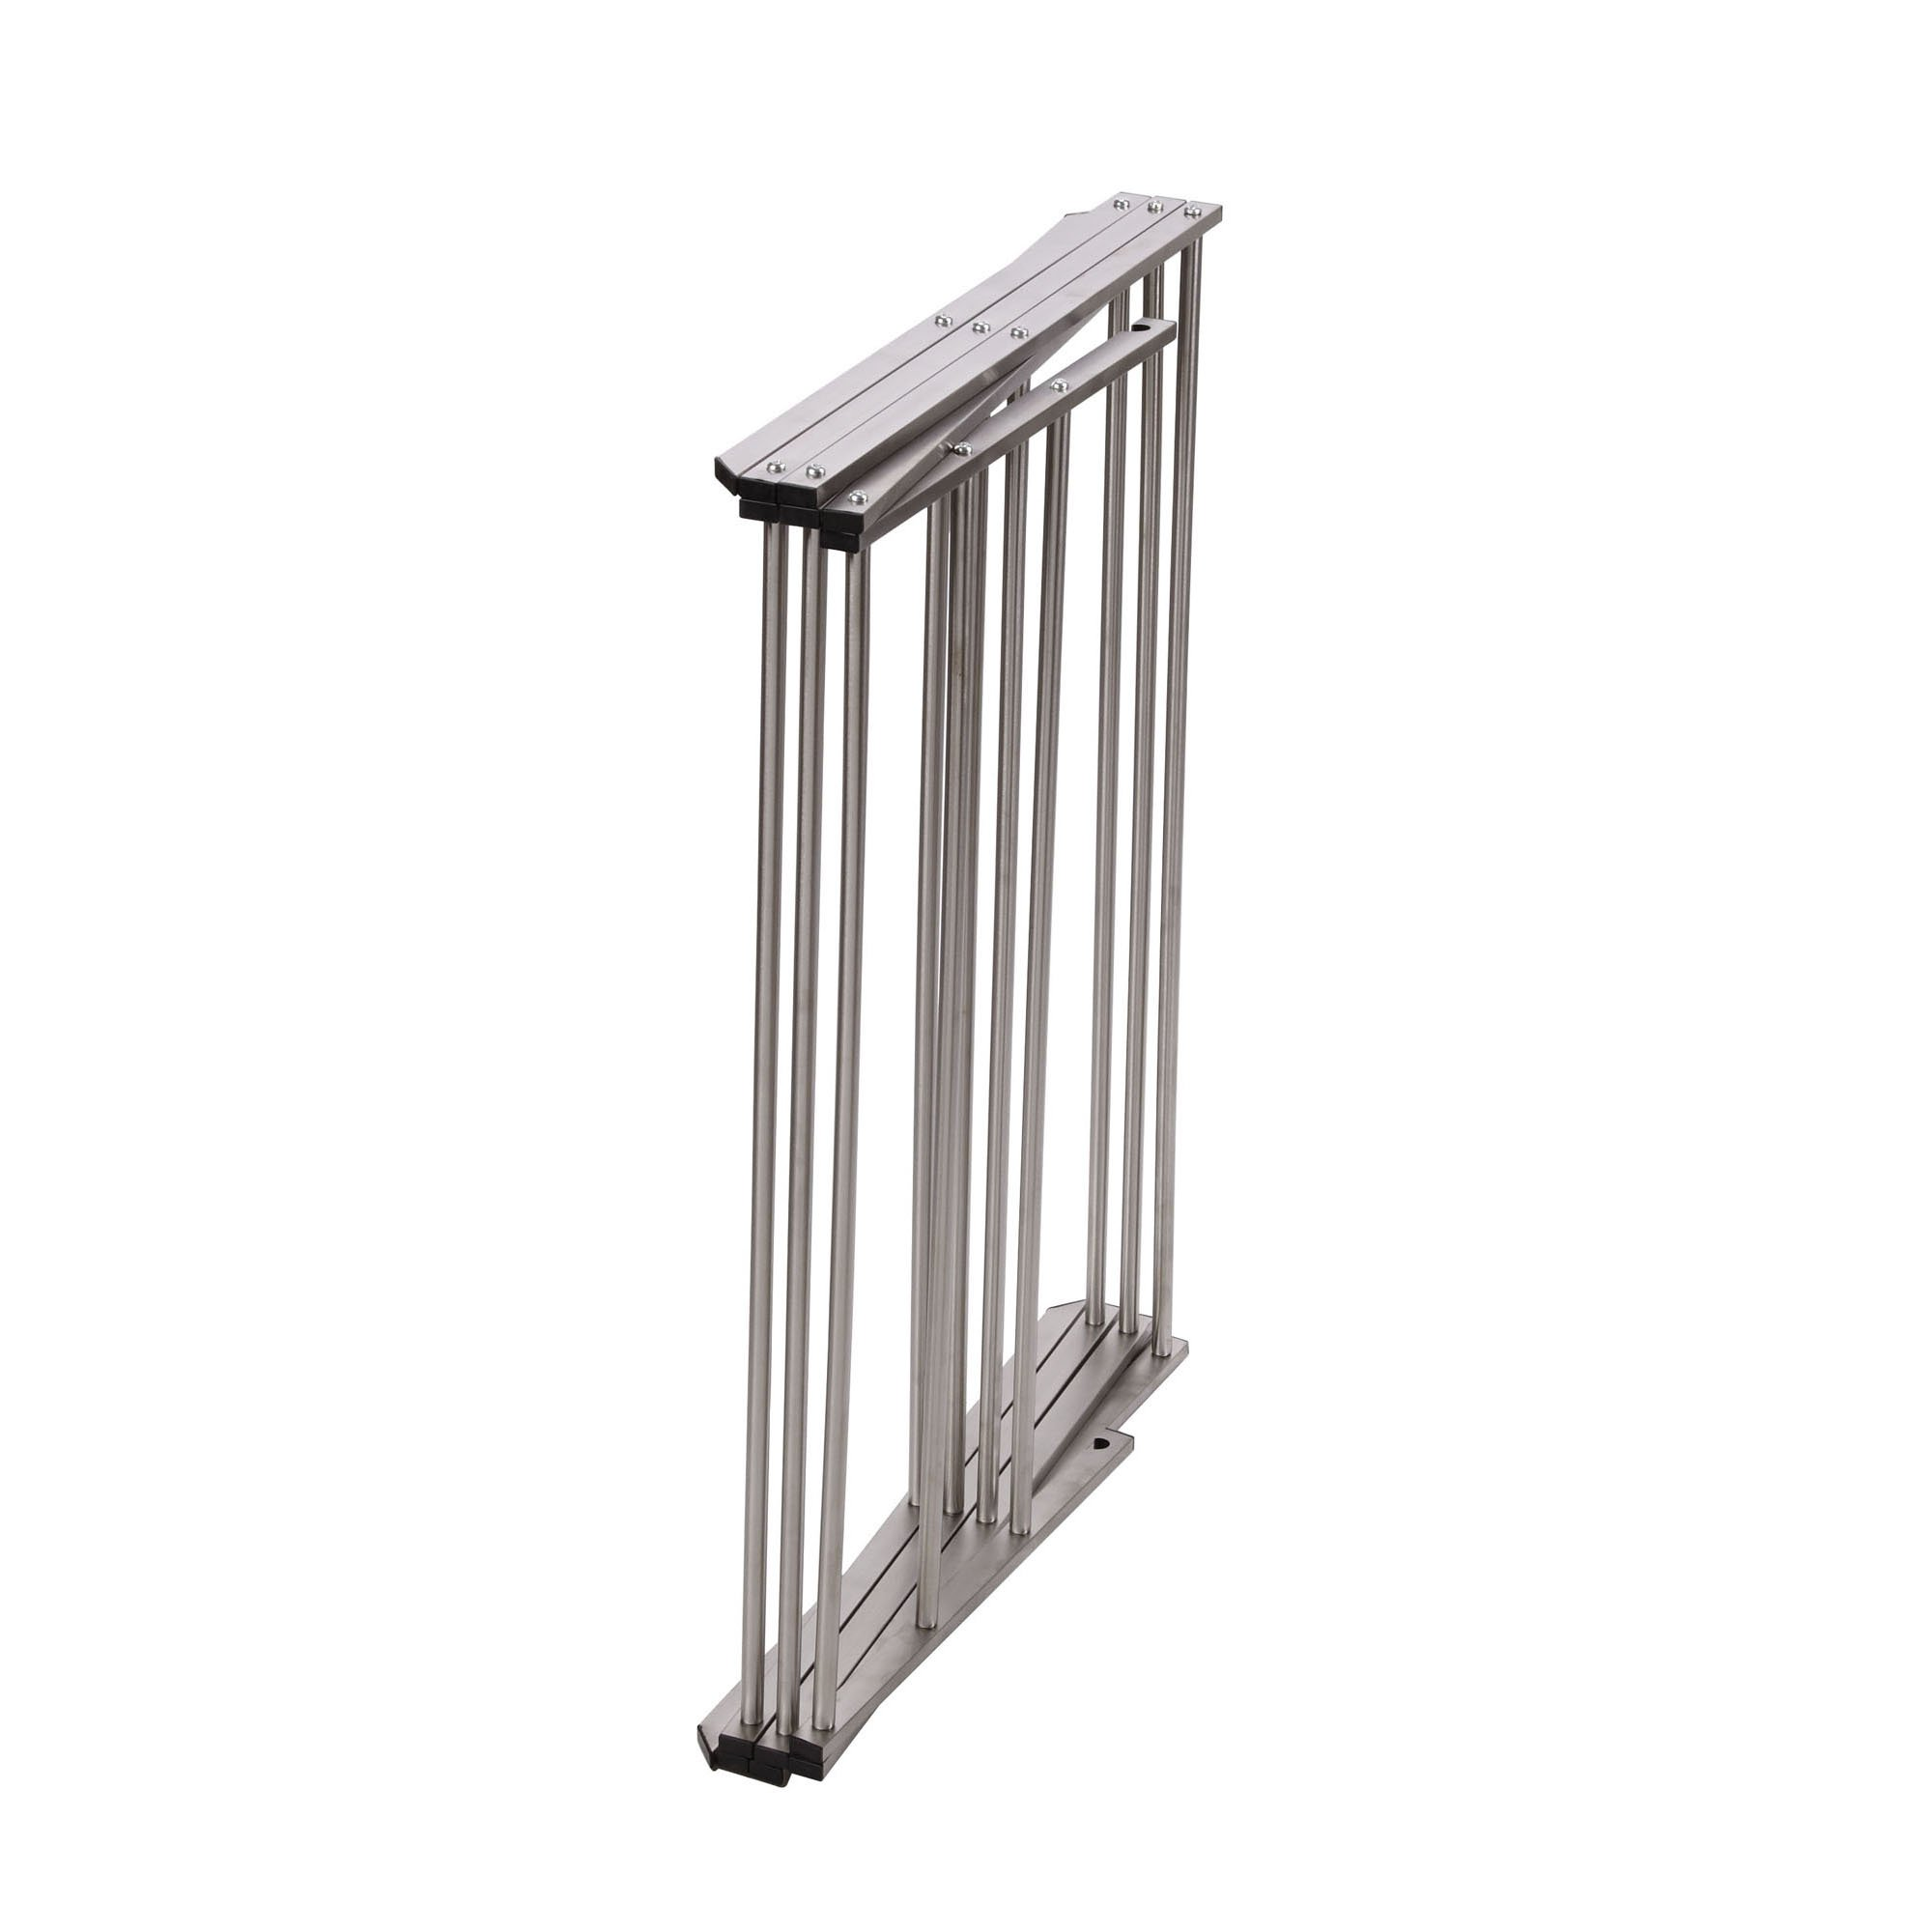 Household Essentials Folding X-Frame Clothes Dryer, Stainless Steel by Household Essentials (Image #4)